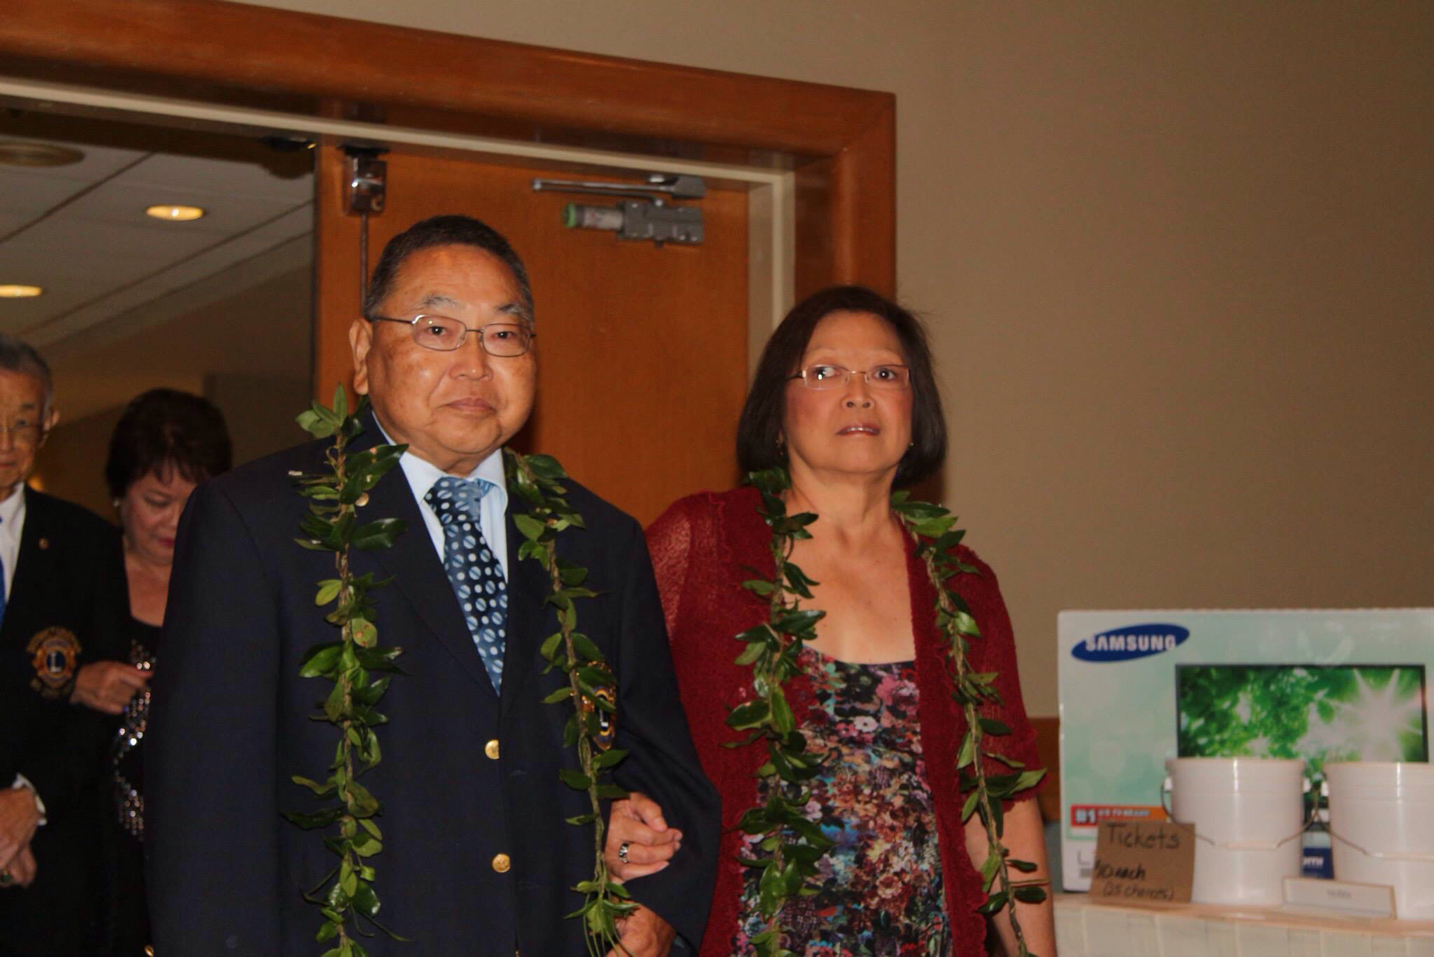 PDG Roy Nishida and CIS Leila as they entered the District Governor's banquet